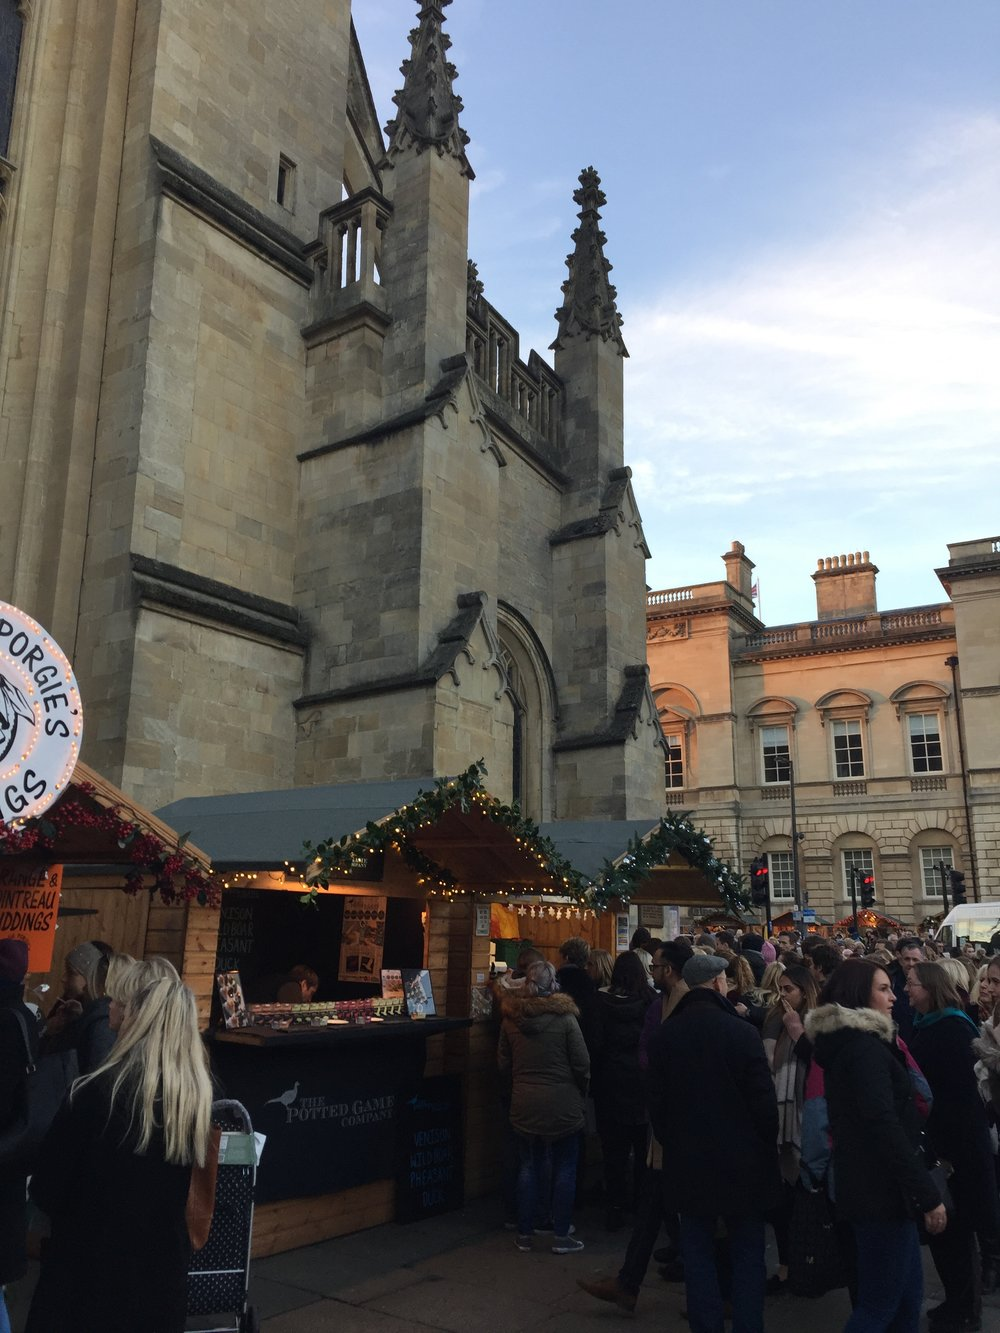 bathchristmasmarkets.jpg